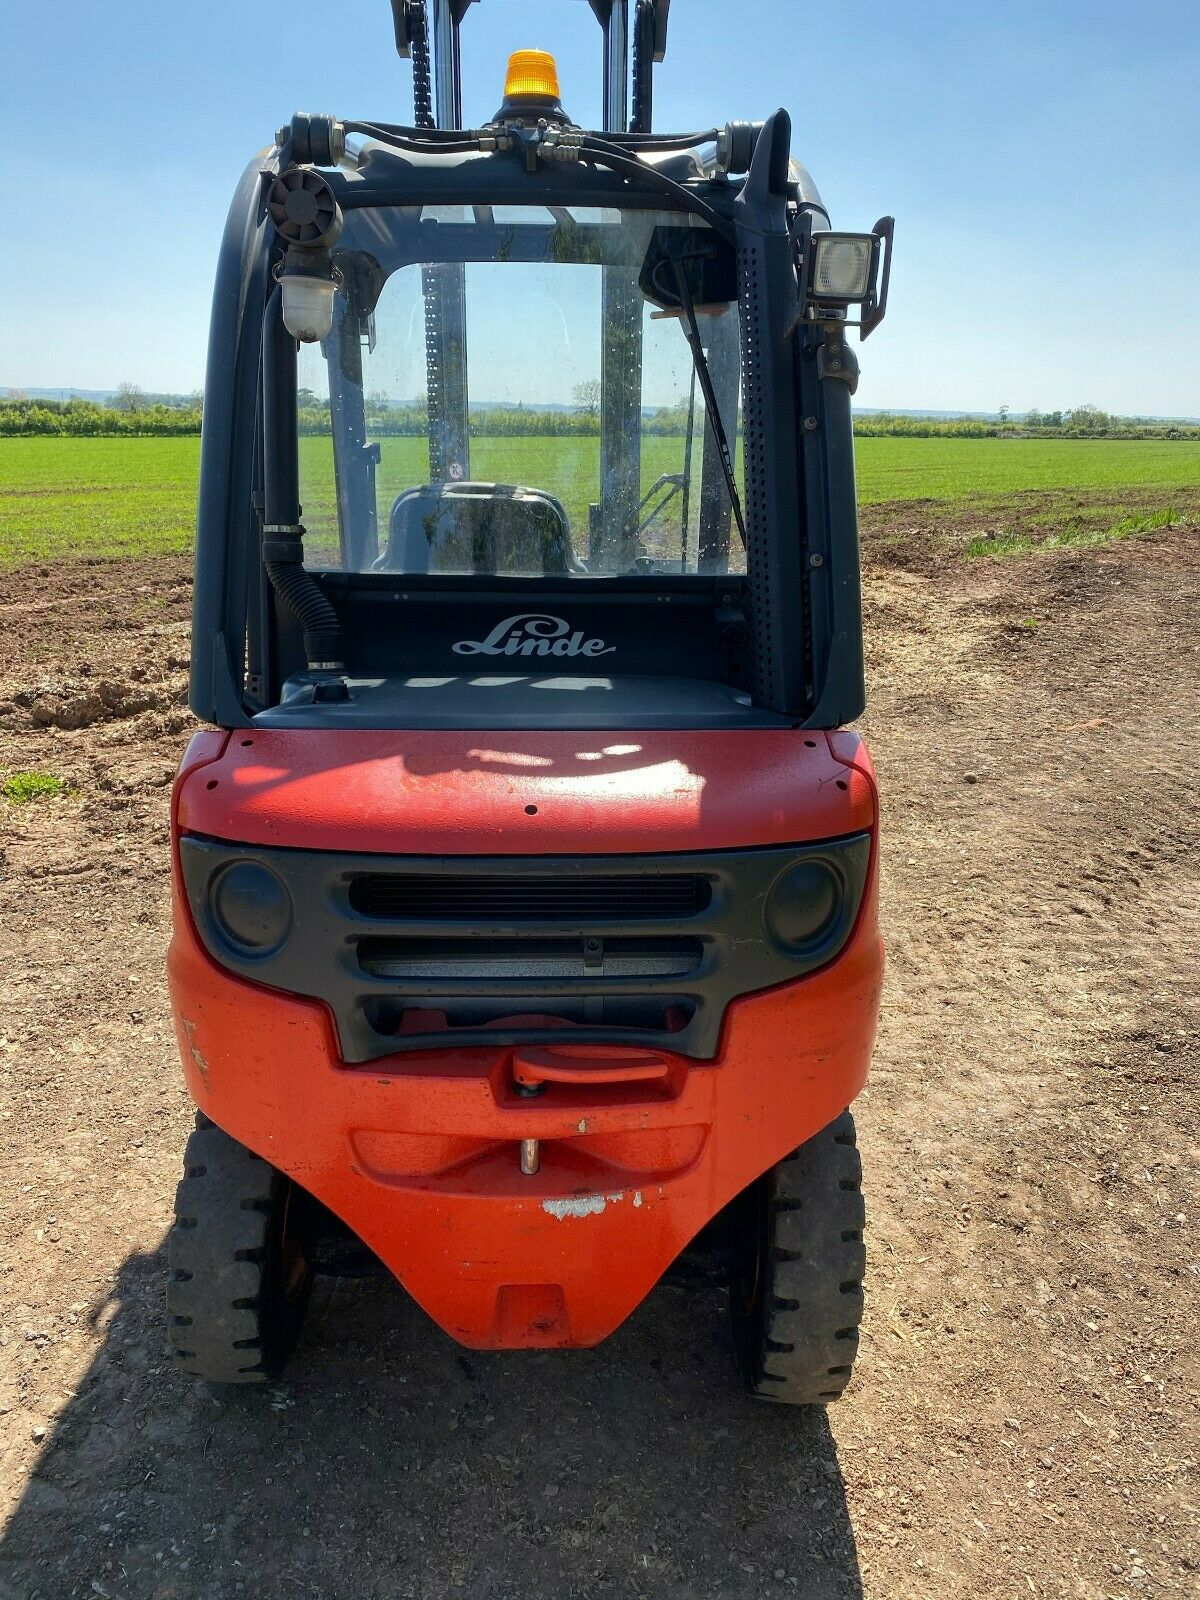 LINDE 2.5 TON, MODEL: H25D, 3.7 METRE LIFT, DUPLEX, SIDE SHIFT, ONLY 600 HOURS FROM NEW, 1 OWNER - Image 3 of 4